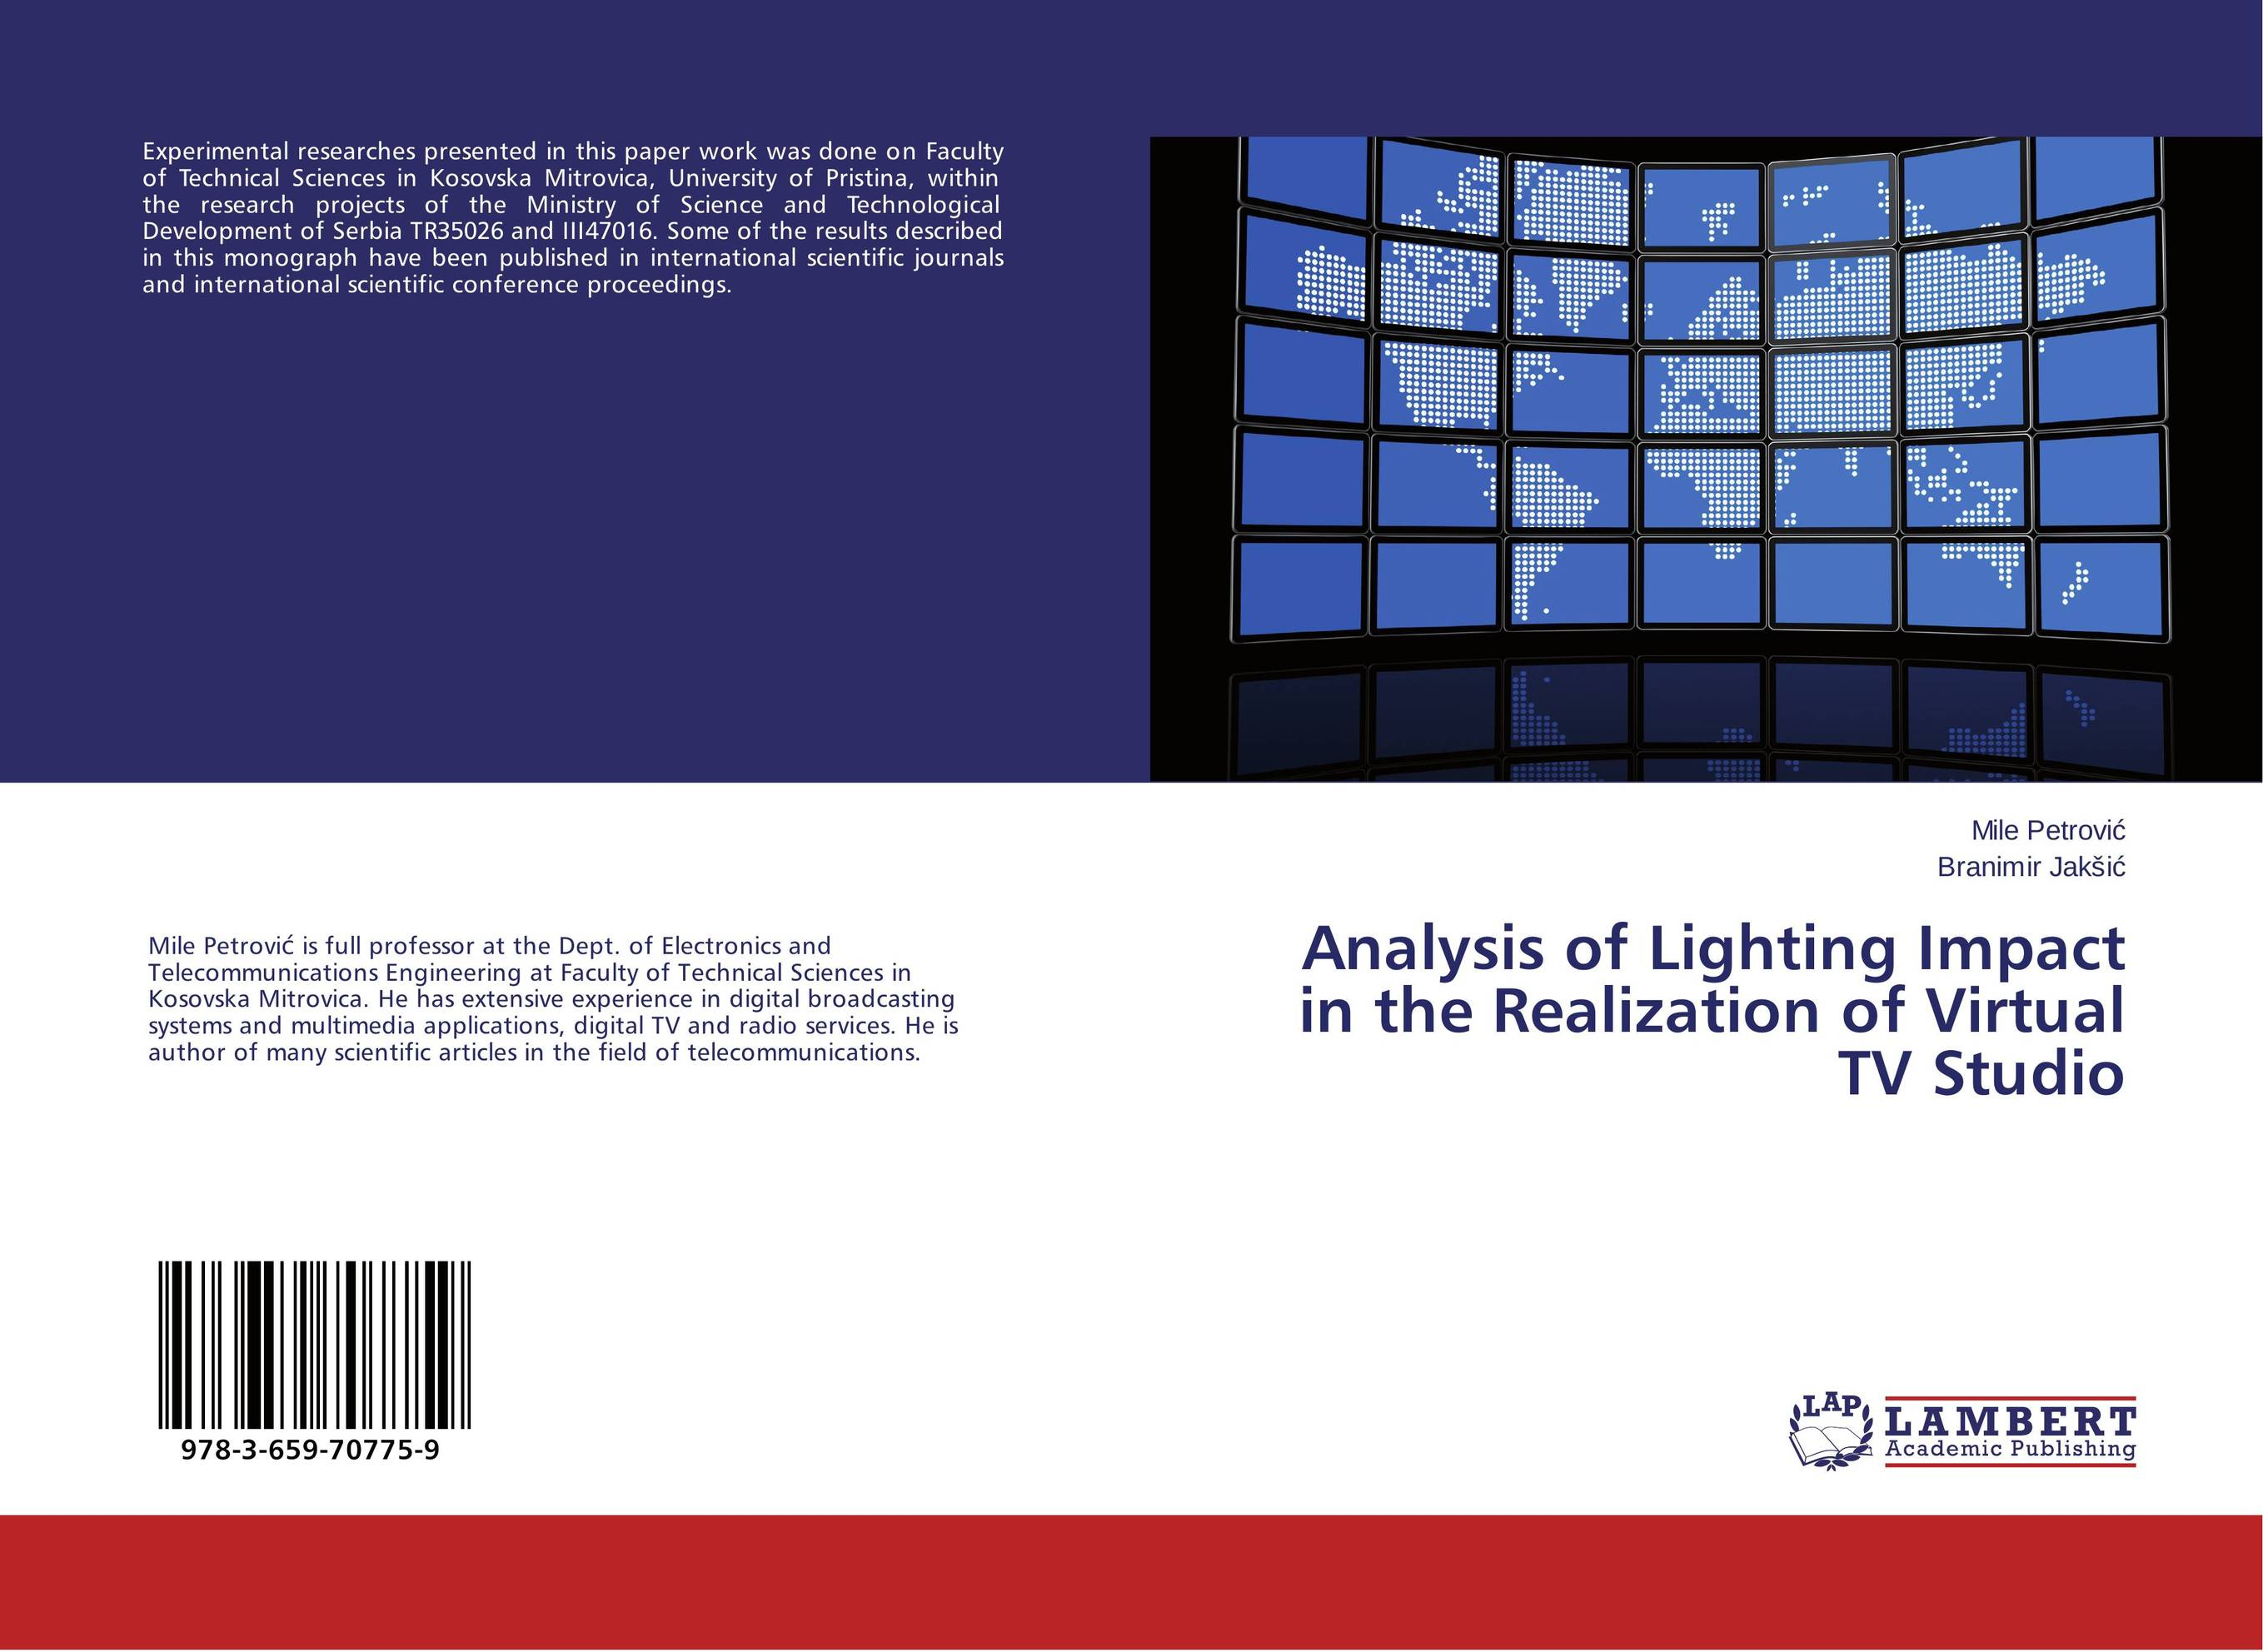 Analysis of Lighting Impact in the Realization of Virtual TV Studio